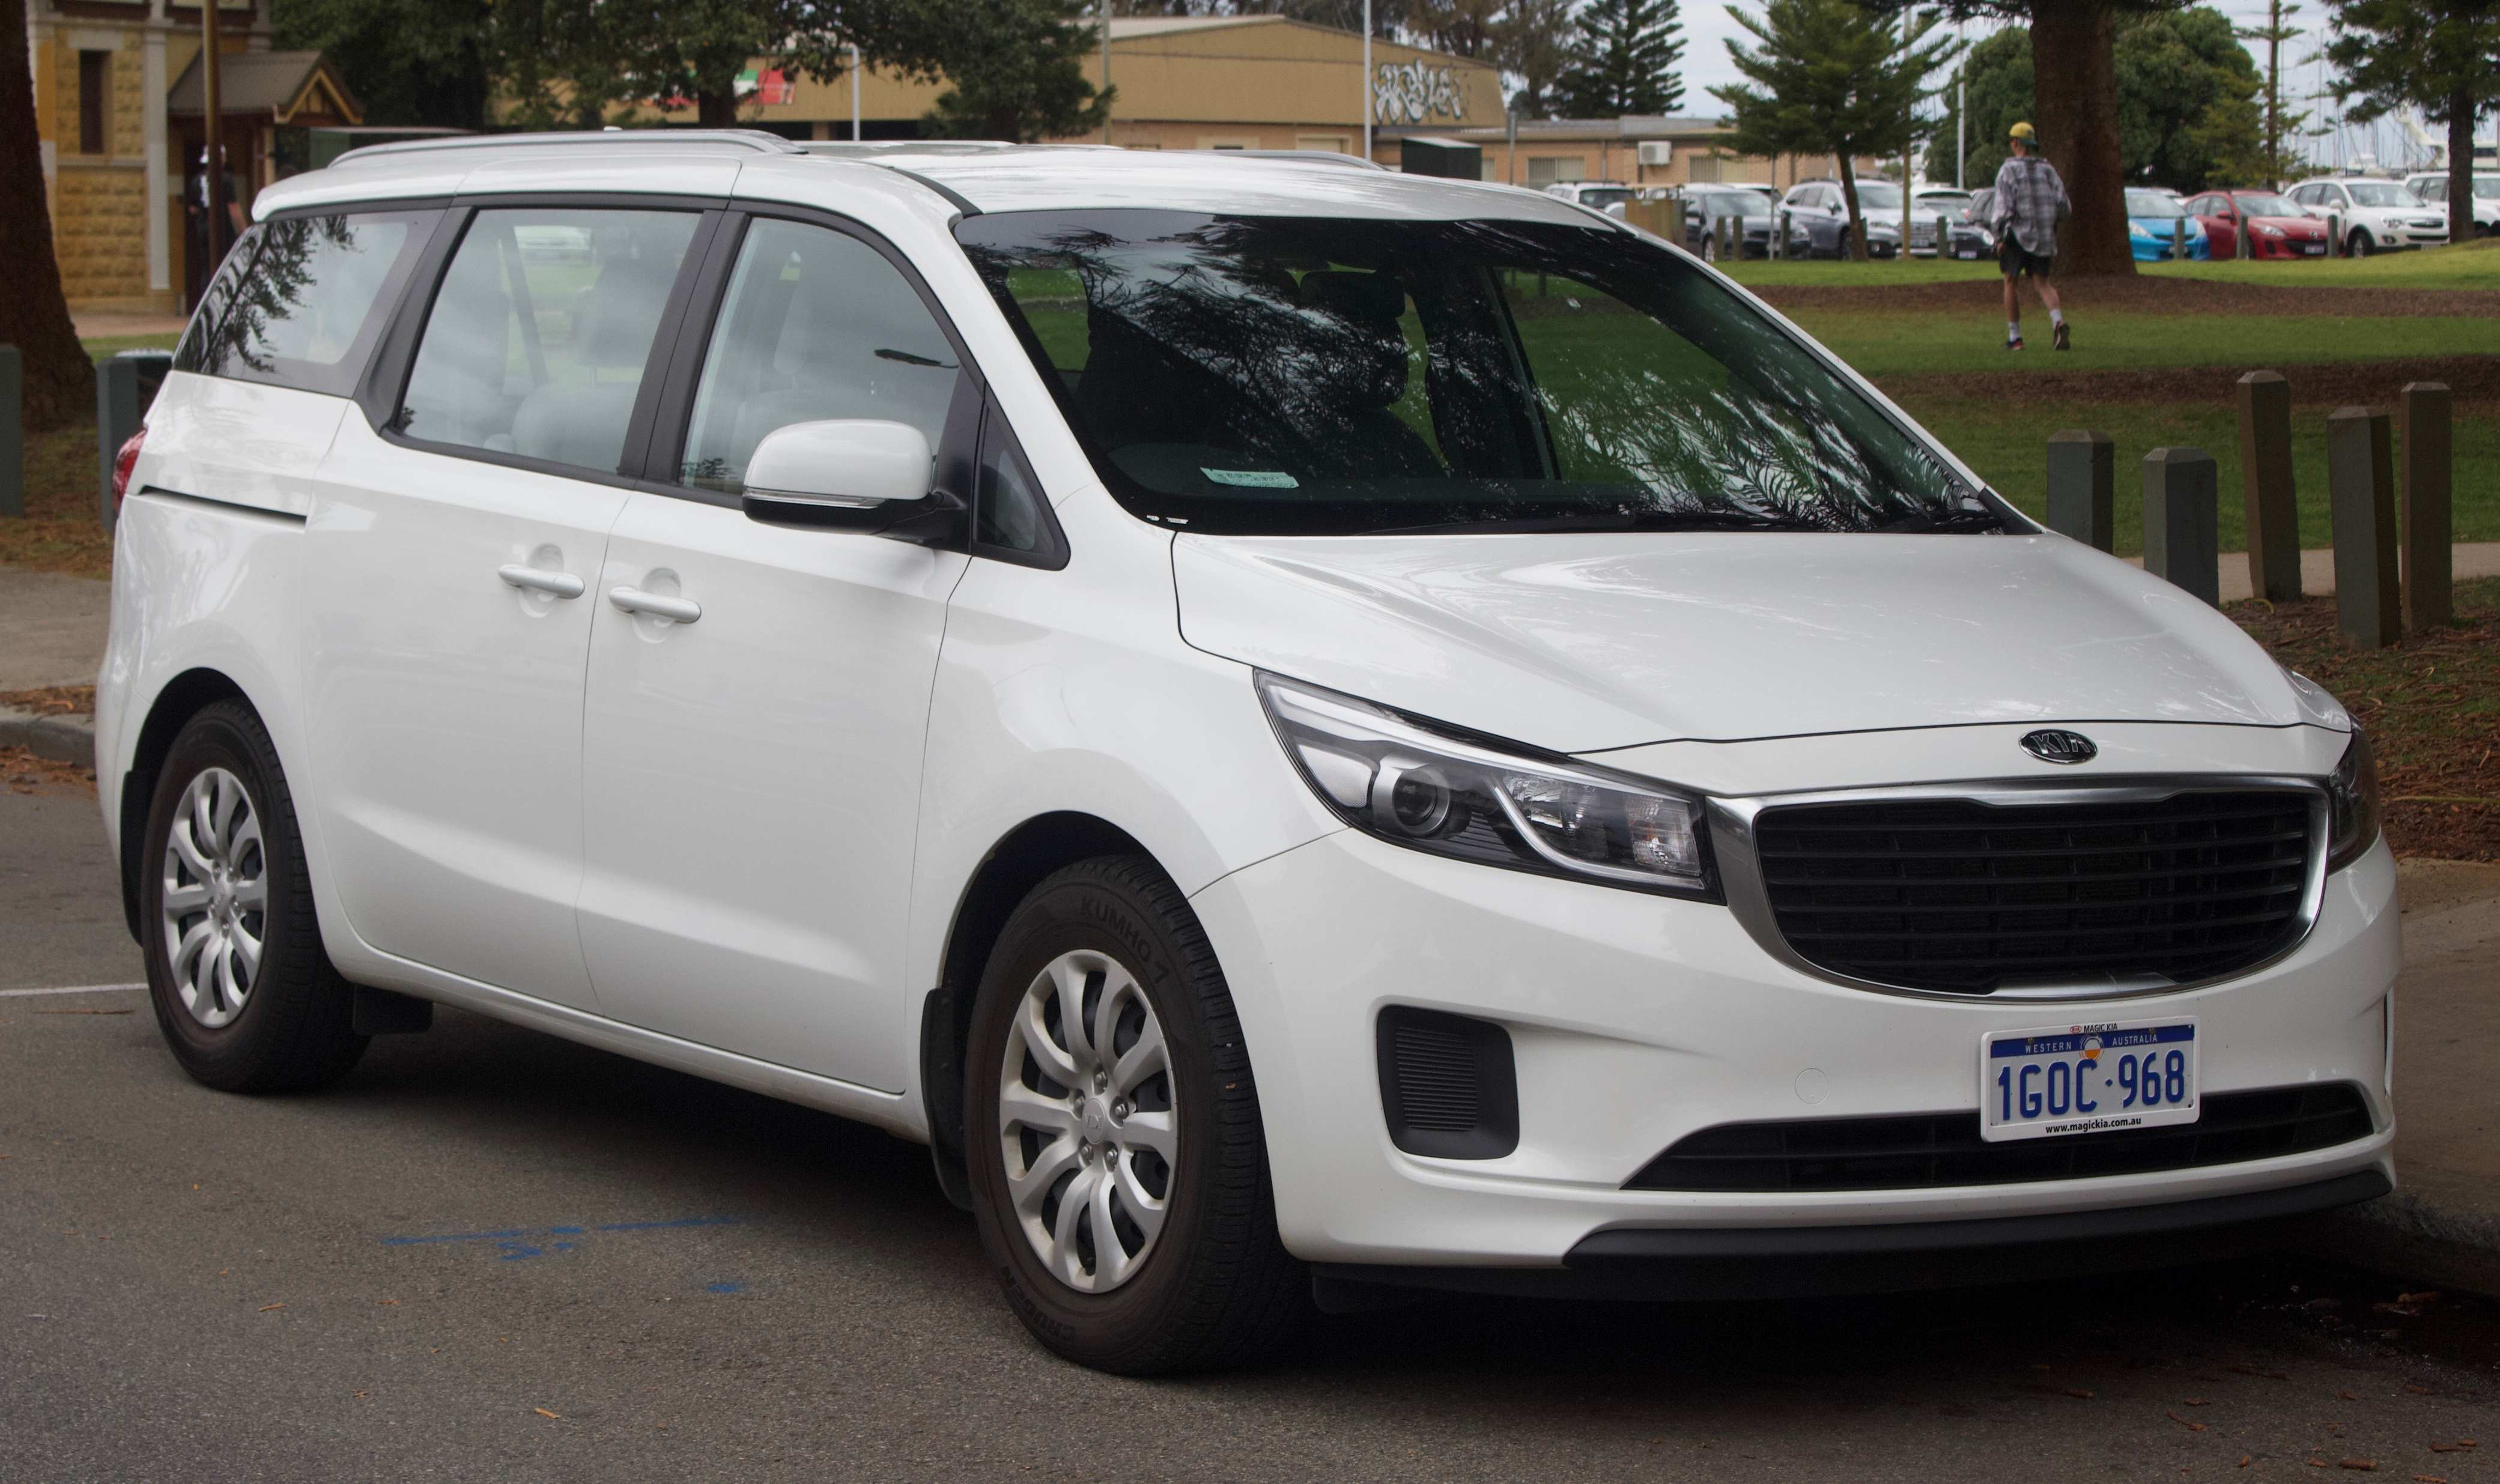 65 The Best 2020 Kia Carnival Images